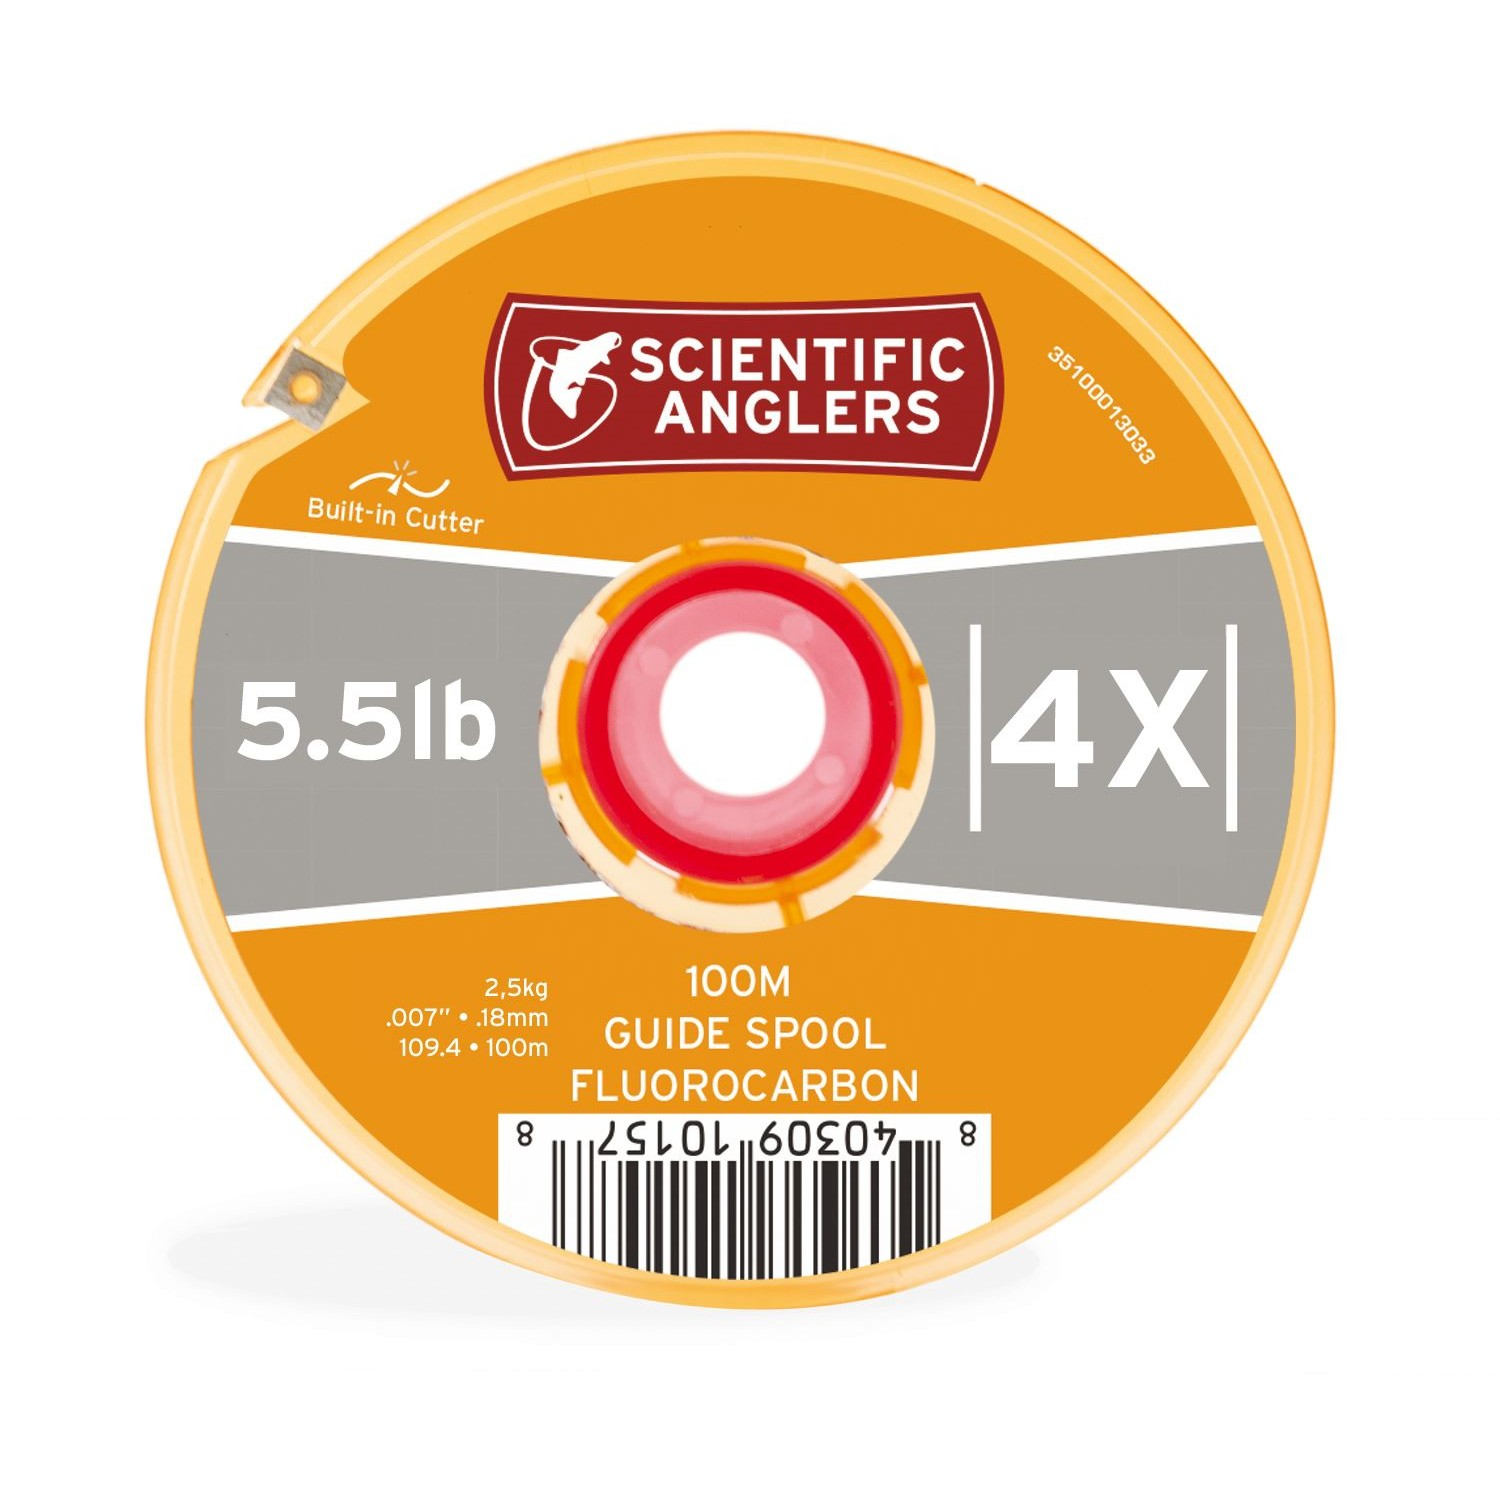 Scientific Anglers - Fluoro Tippet 100m Guide Spool